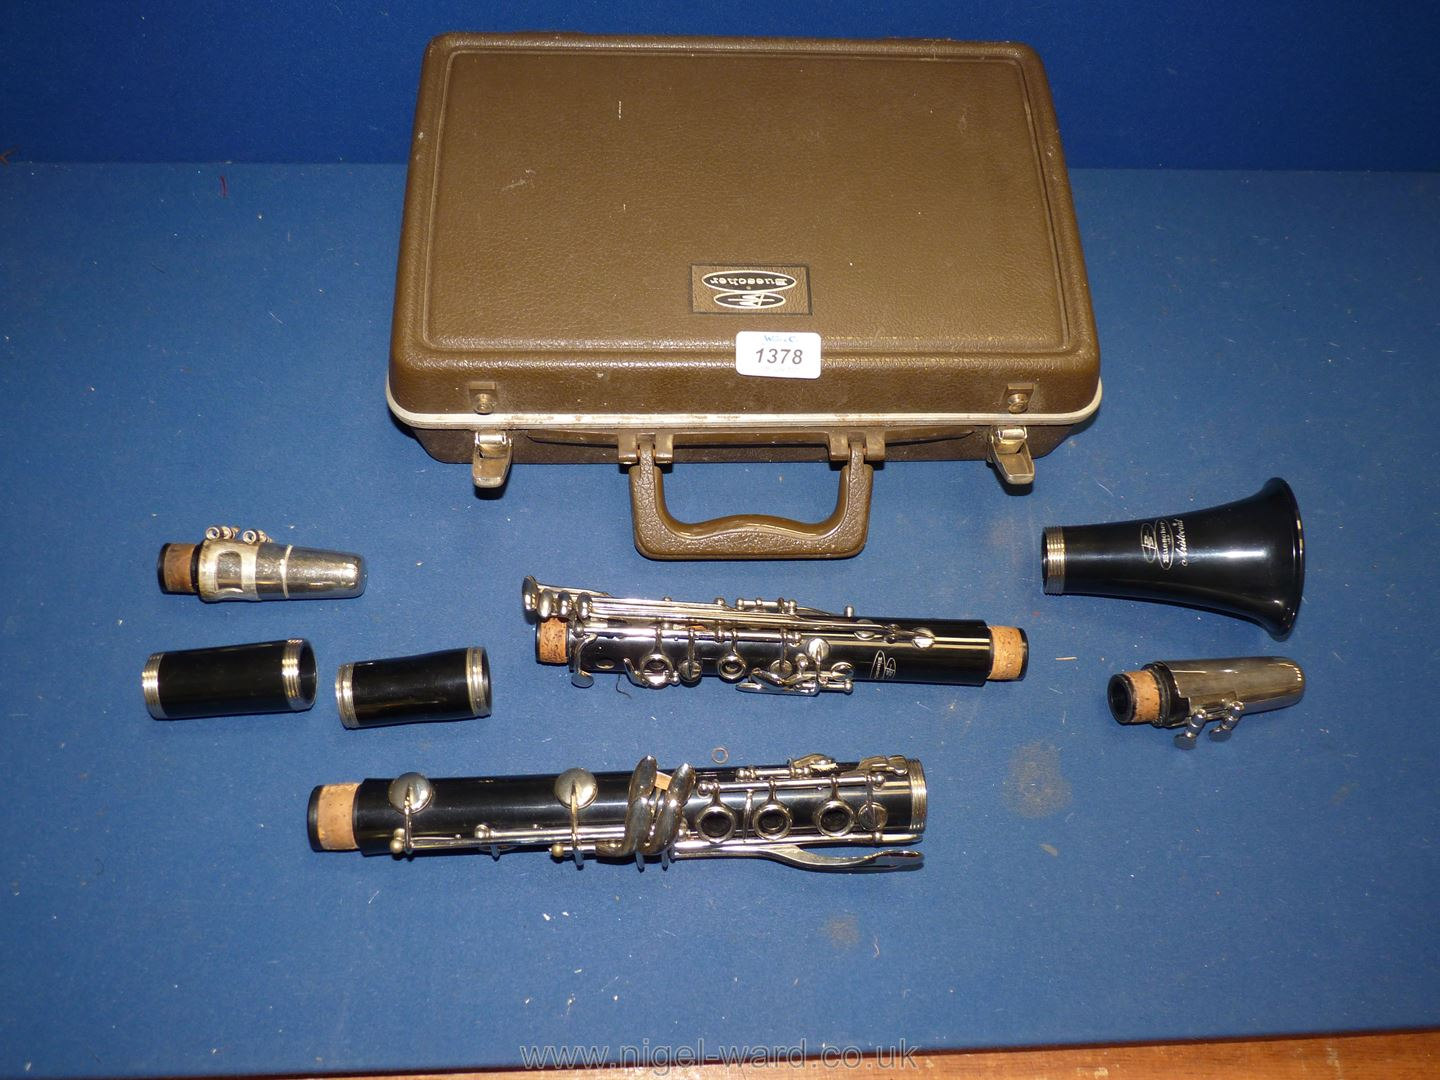 A cased Buescher Aristocrat Clarinet having two mouth pieces, with cleaning rod and reeds.